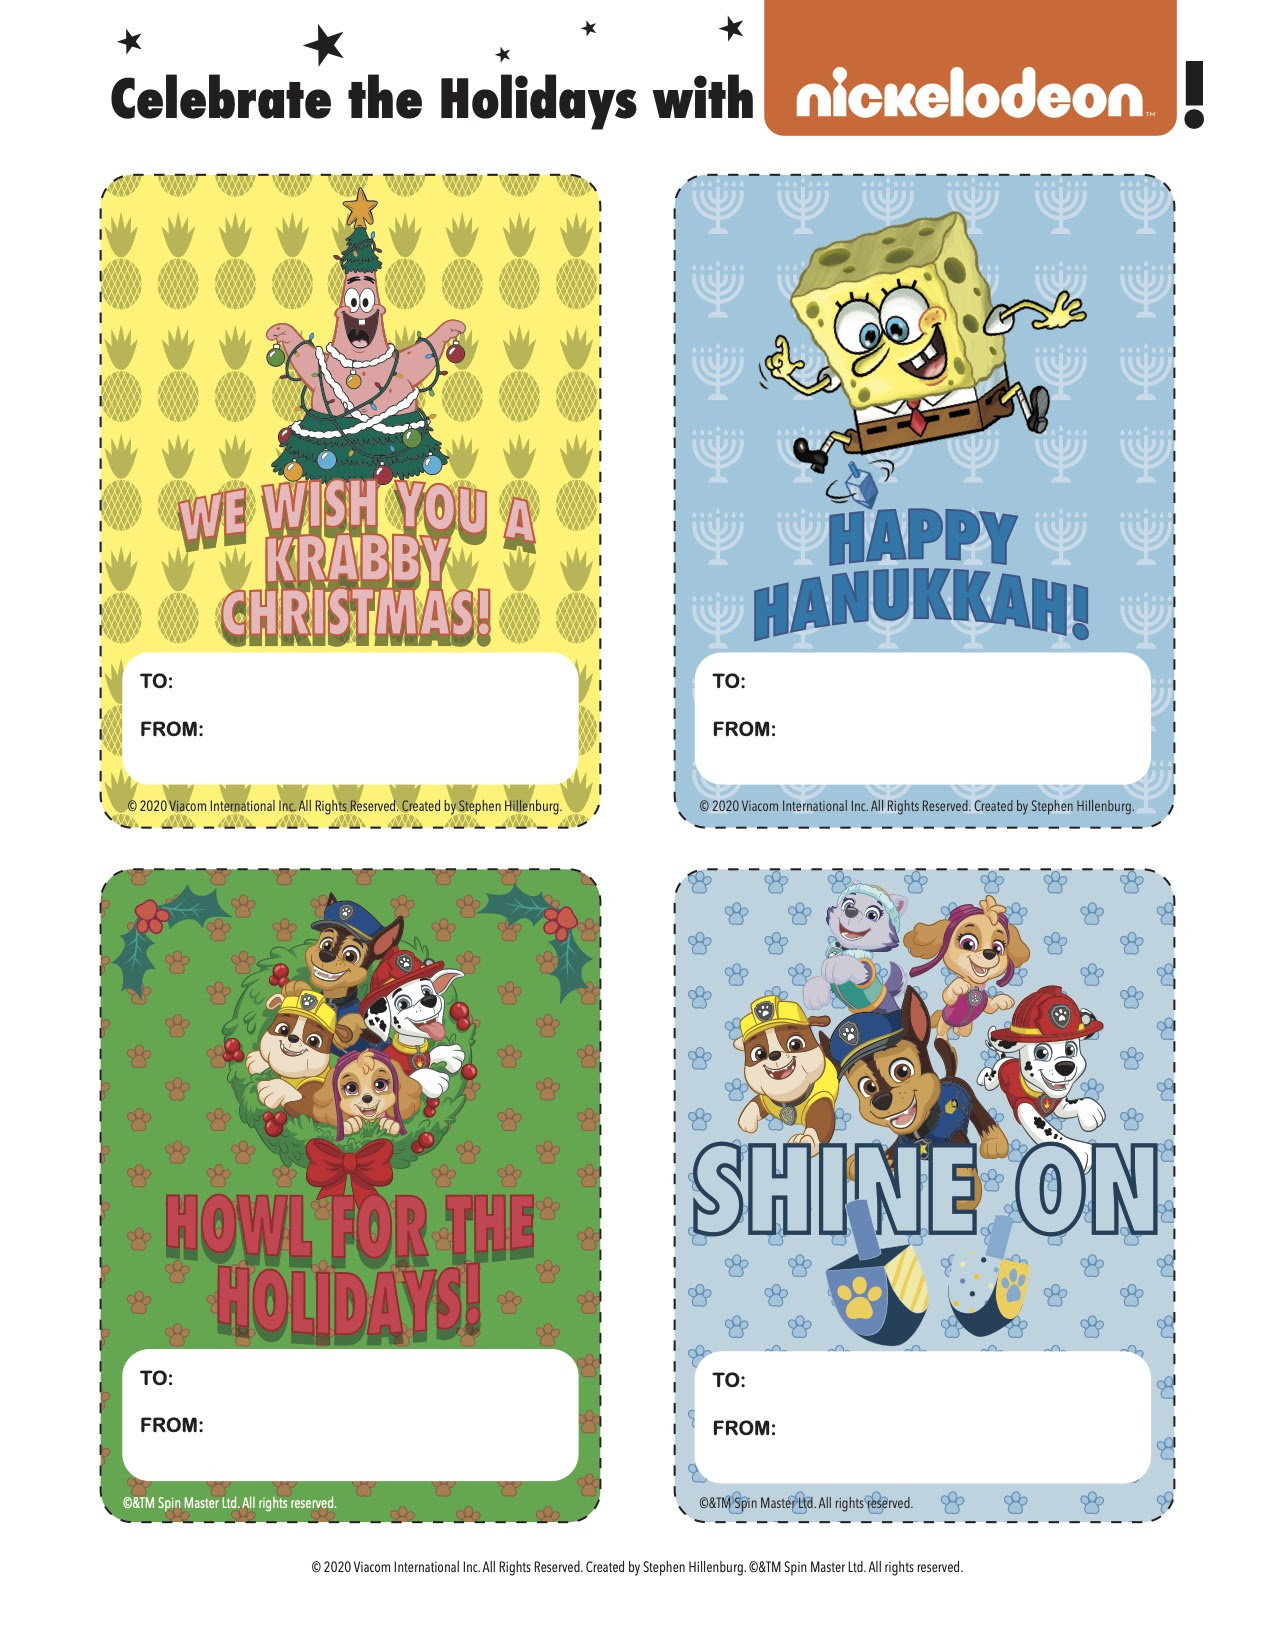 Nickelodeon Present Tags